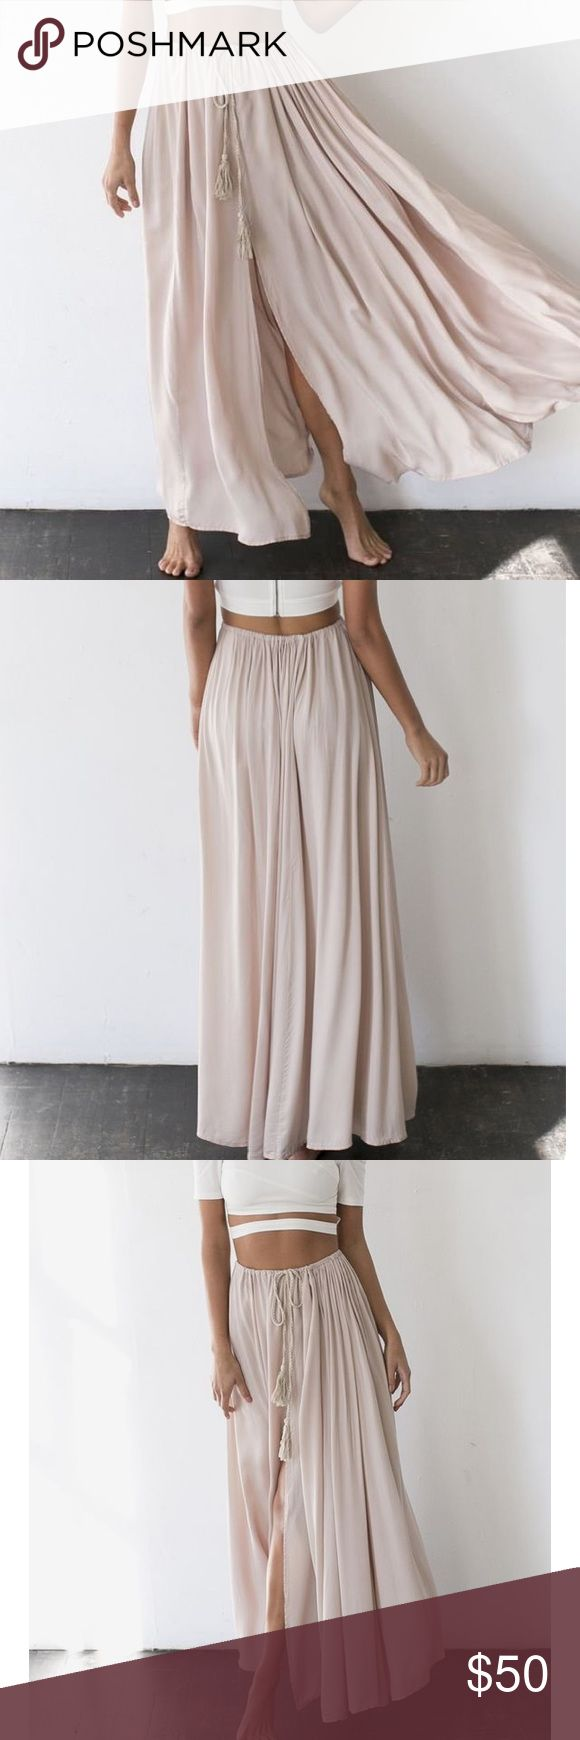 NWT- AGAINST THE TIDES MAXI SKIRT BEIGE-!SOLD OUT! HELLO MOLLY beige maxi skirt. New with tags and still in packaging! Only selling because it was bought for an event, but arrived too late. Sold out online!! Offer up:) HELLO MOLLY Skirts Maxi